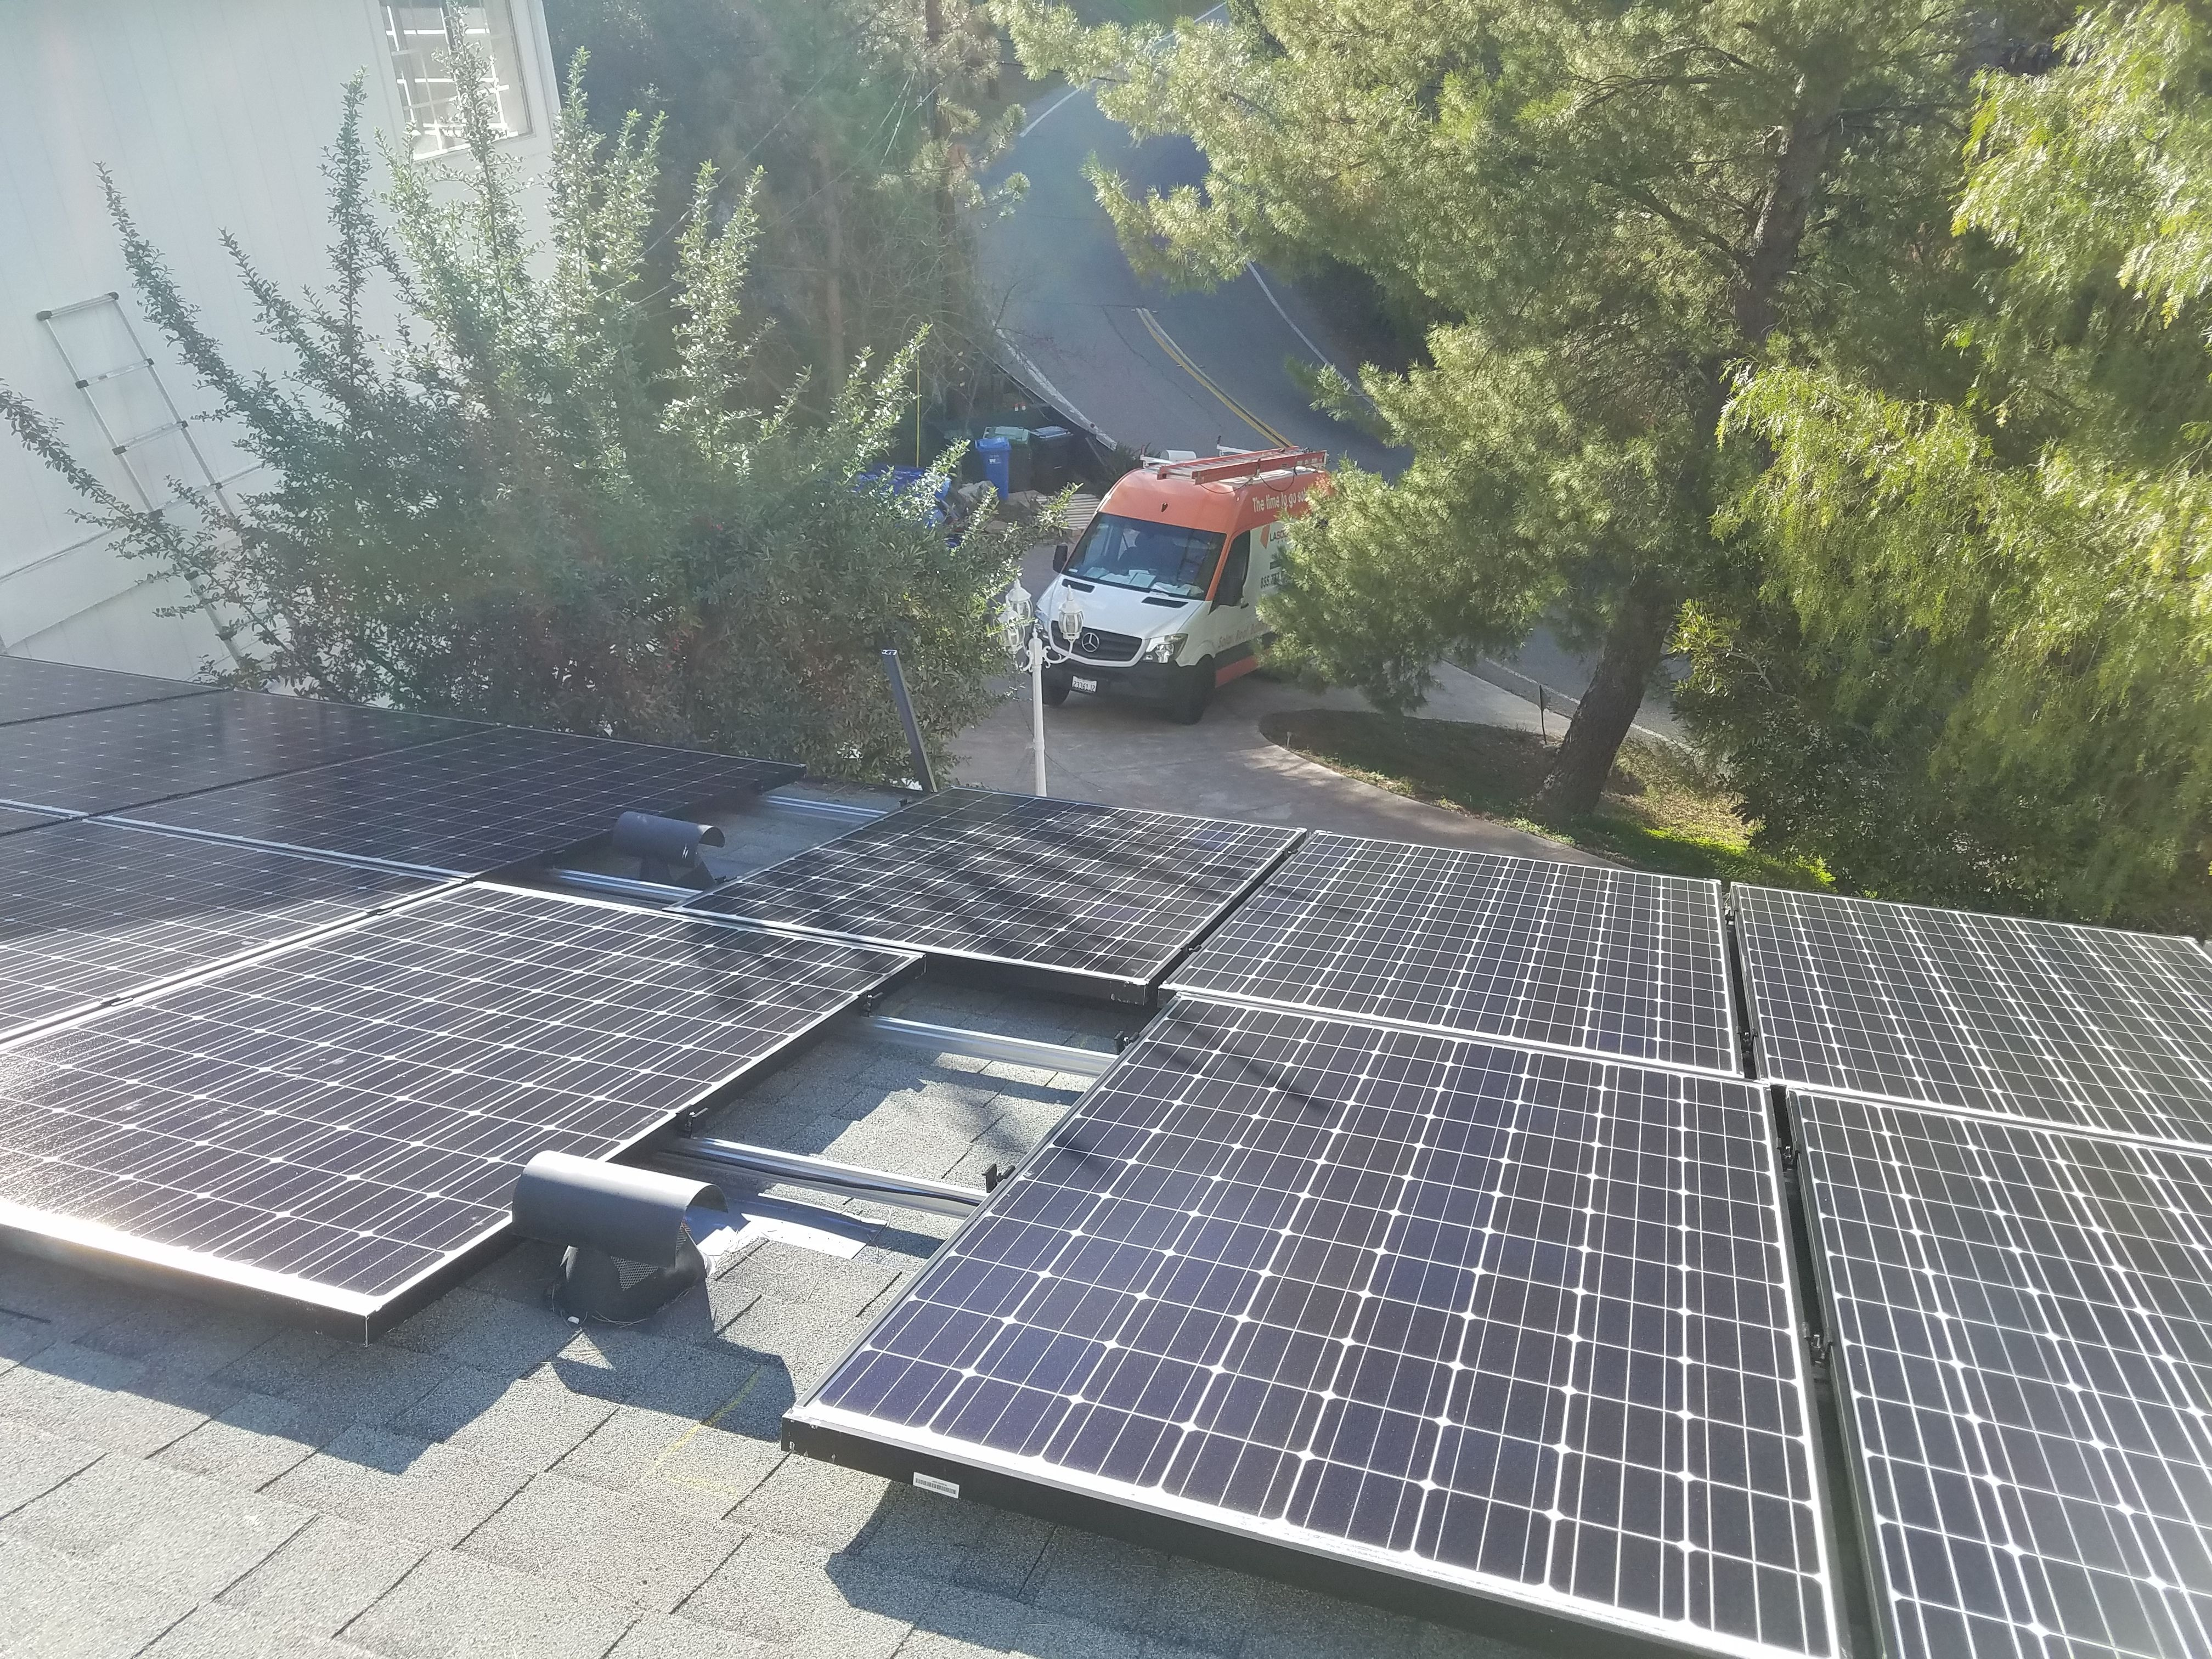 Installation Done By Lasg Our Lasg Van Is On The Background Waiting To Arrive At Your House Visit Our Website Https L Solar Best Solar Panels Solar Panels